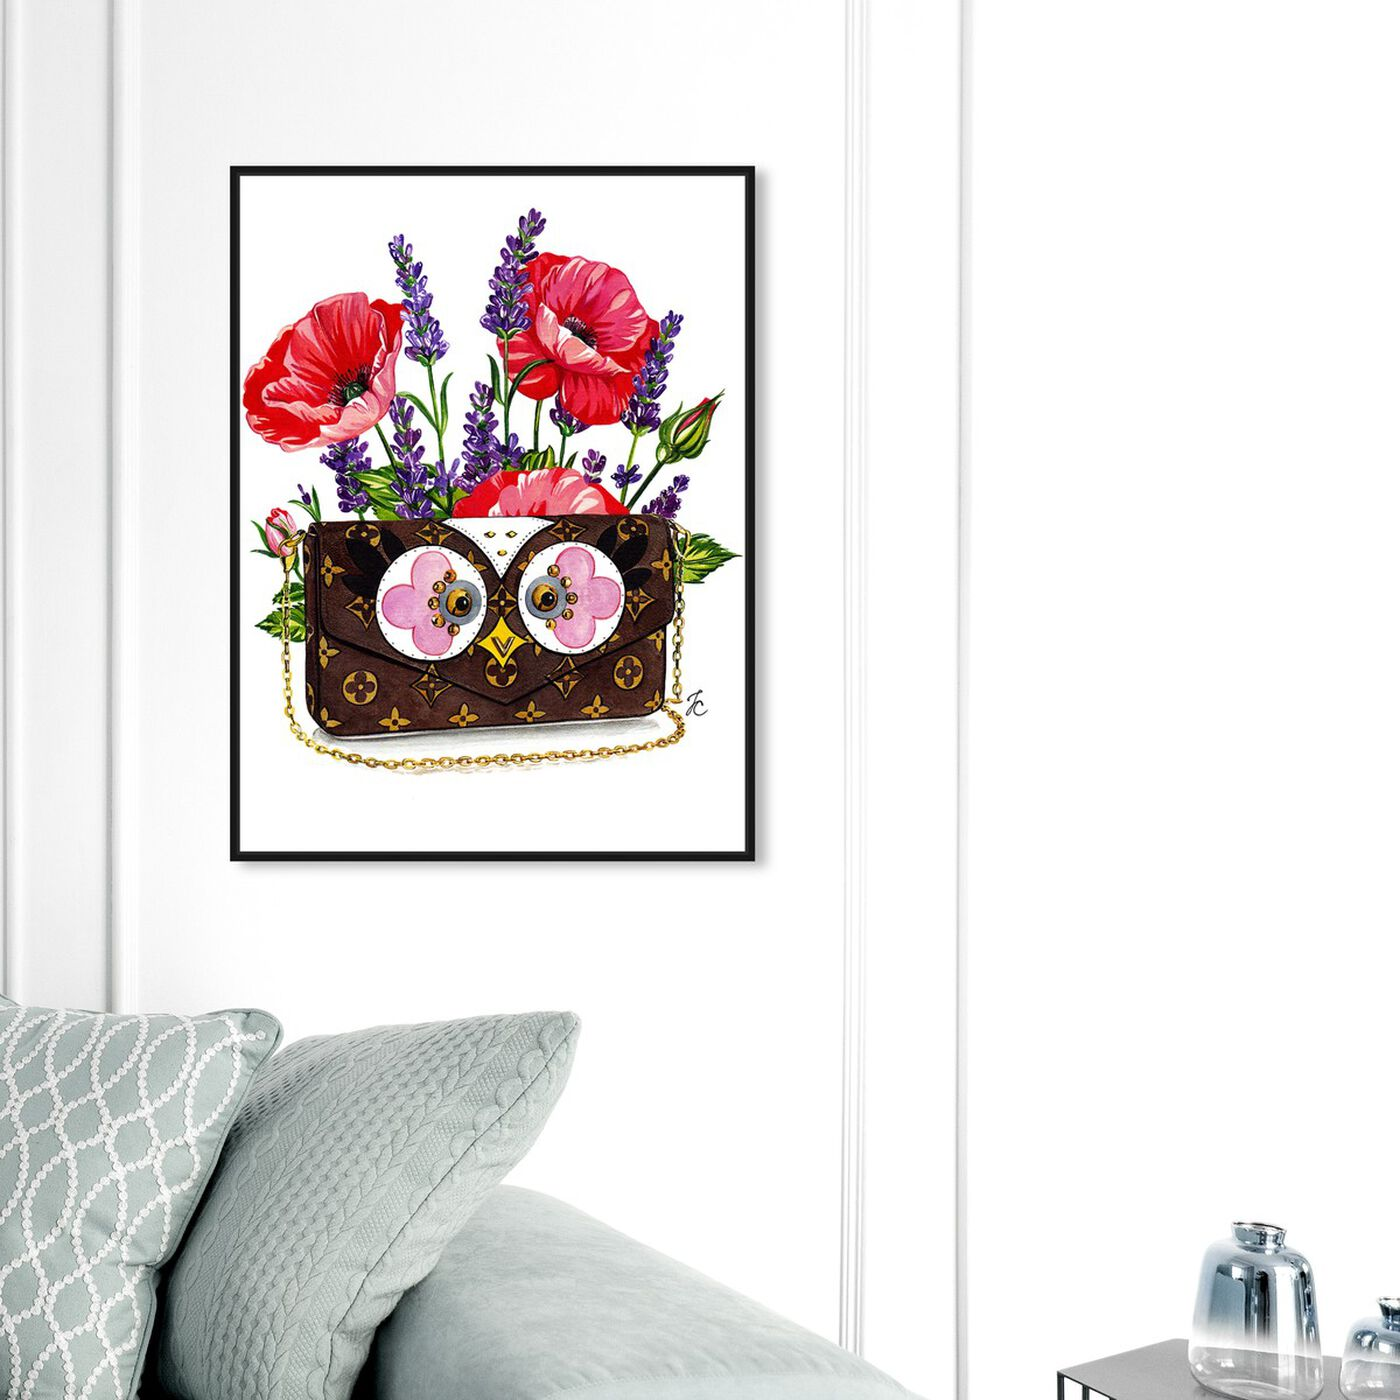 Hanging view of Doll Memories - Poppies and Owl featuring fashion and glam and handbags art.